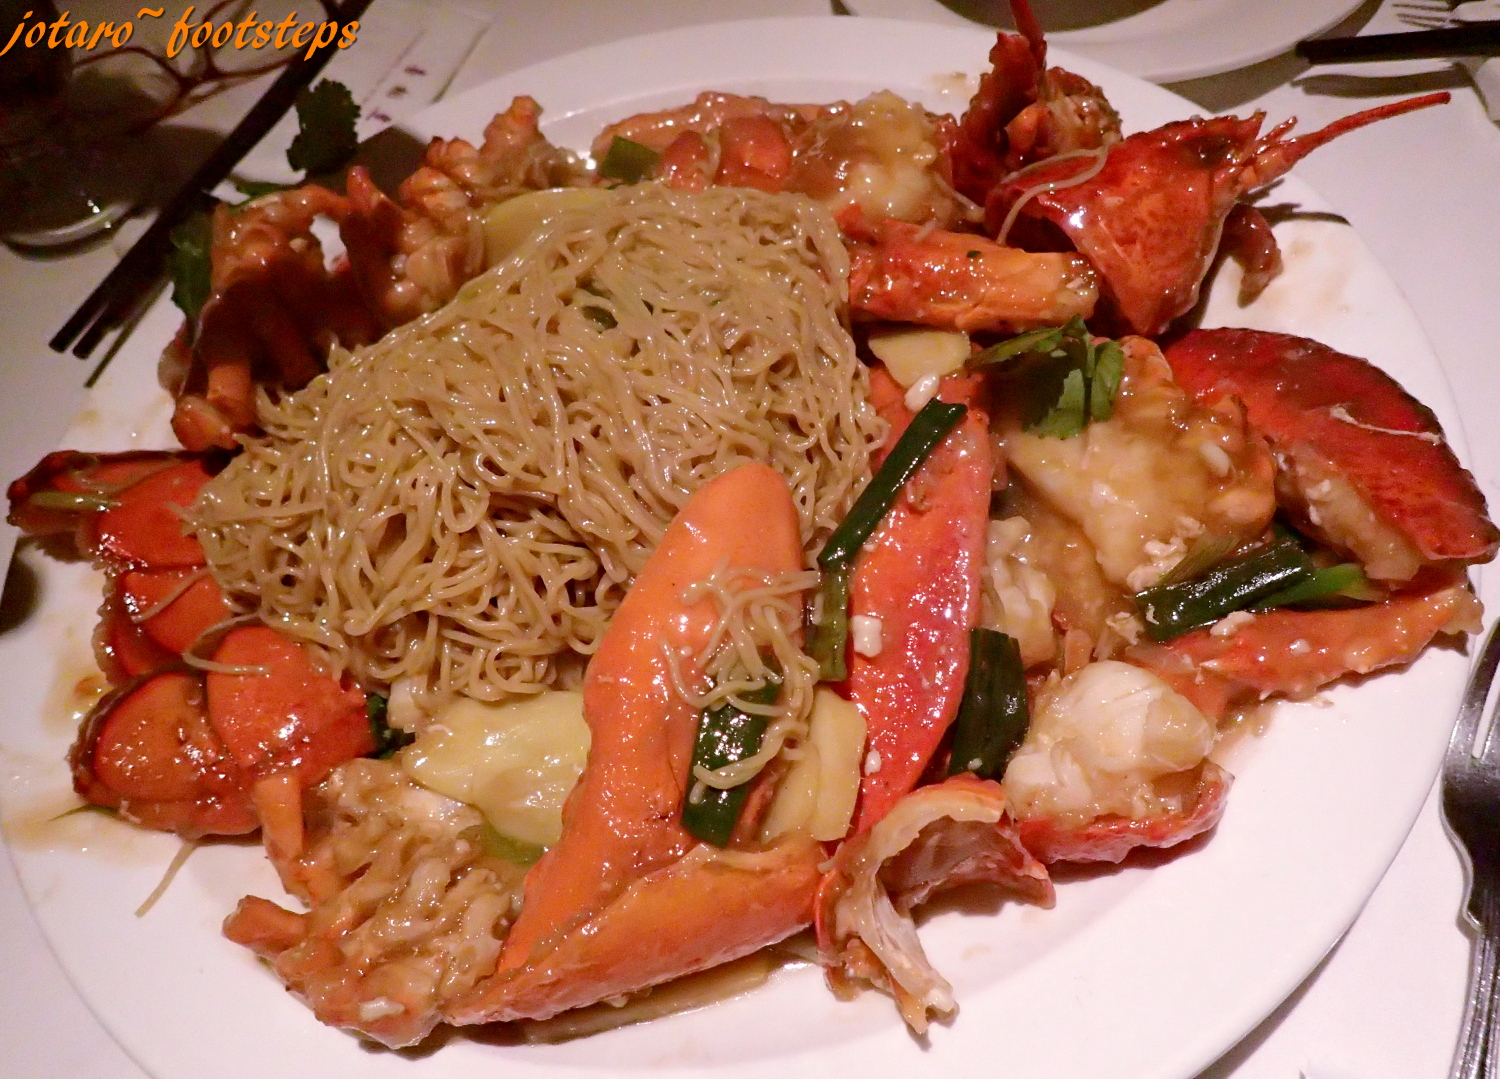 Footsteps Jotaro S Travels Yummy Lobster Noodles